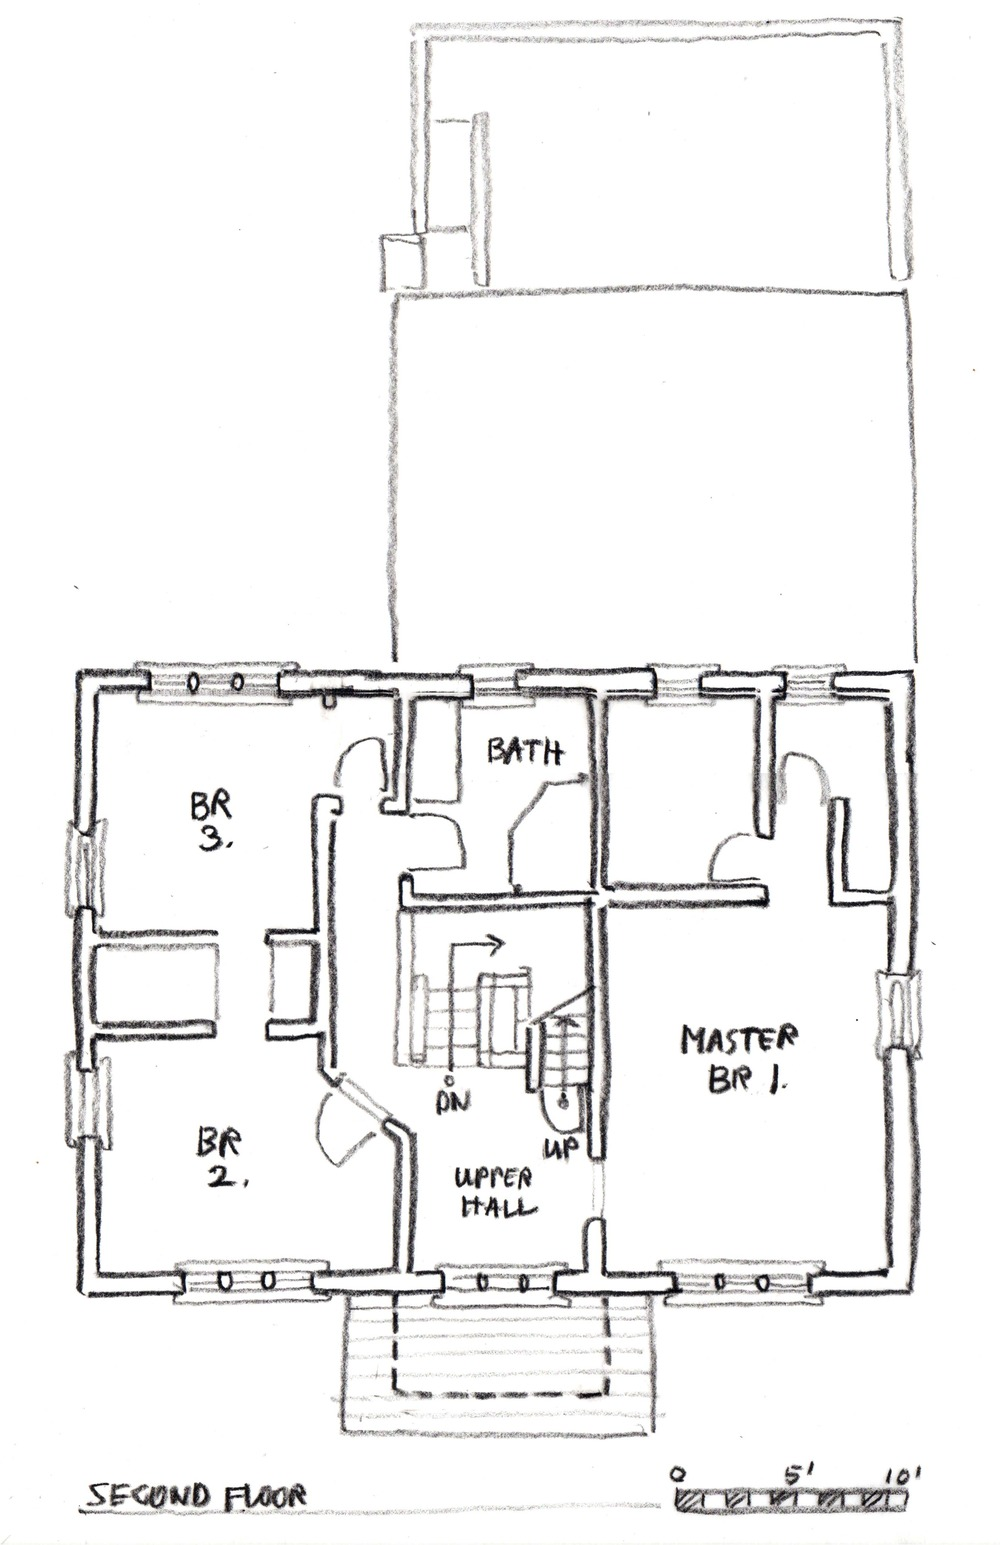 70 Weybourne TP Sketch All Floors_Page_4.jpg